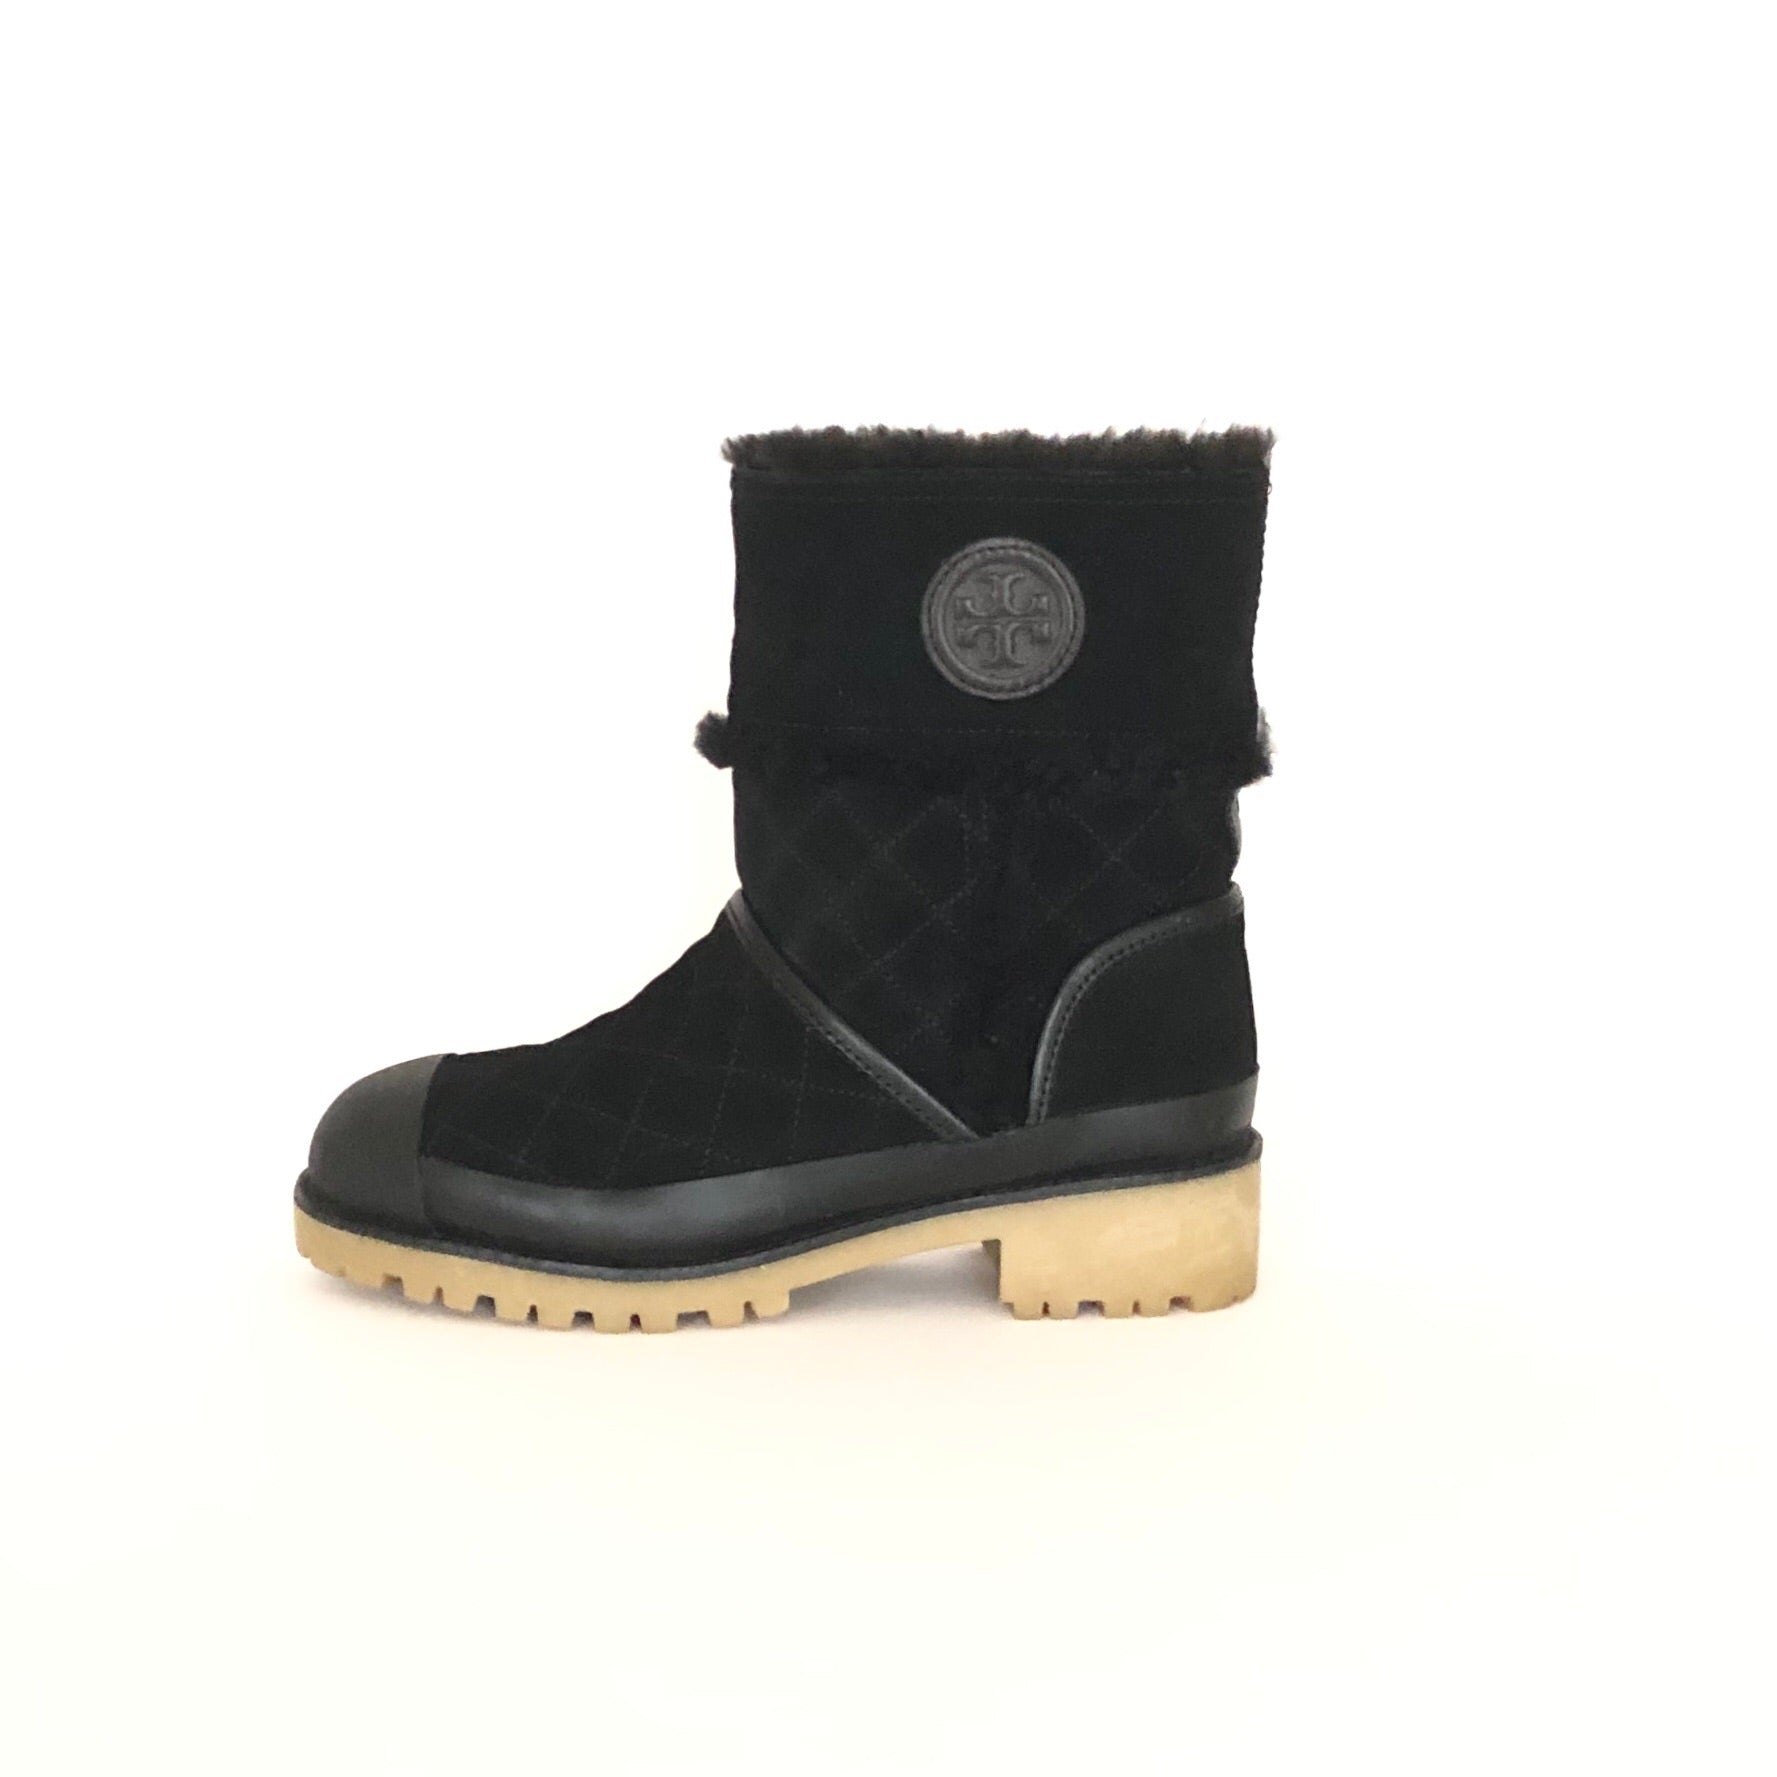 Tory Burch Boughton Shearling Black Bootie